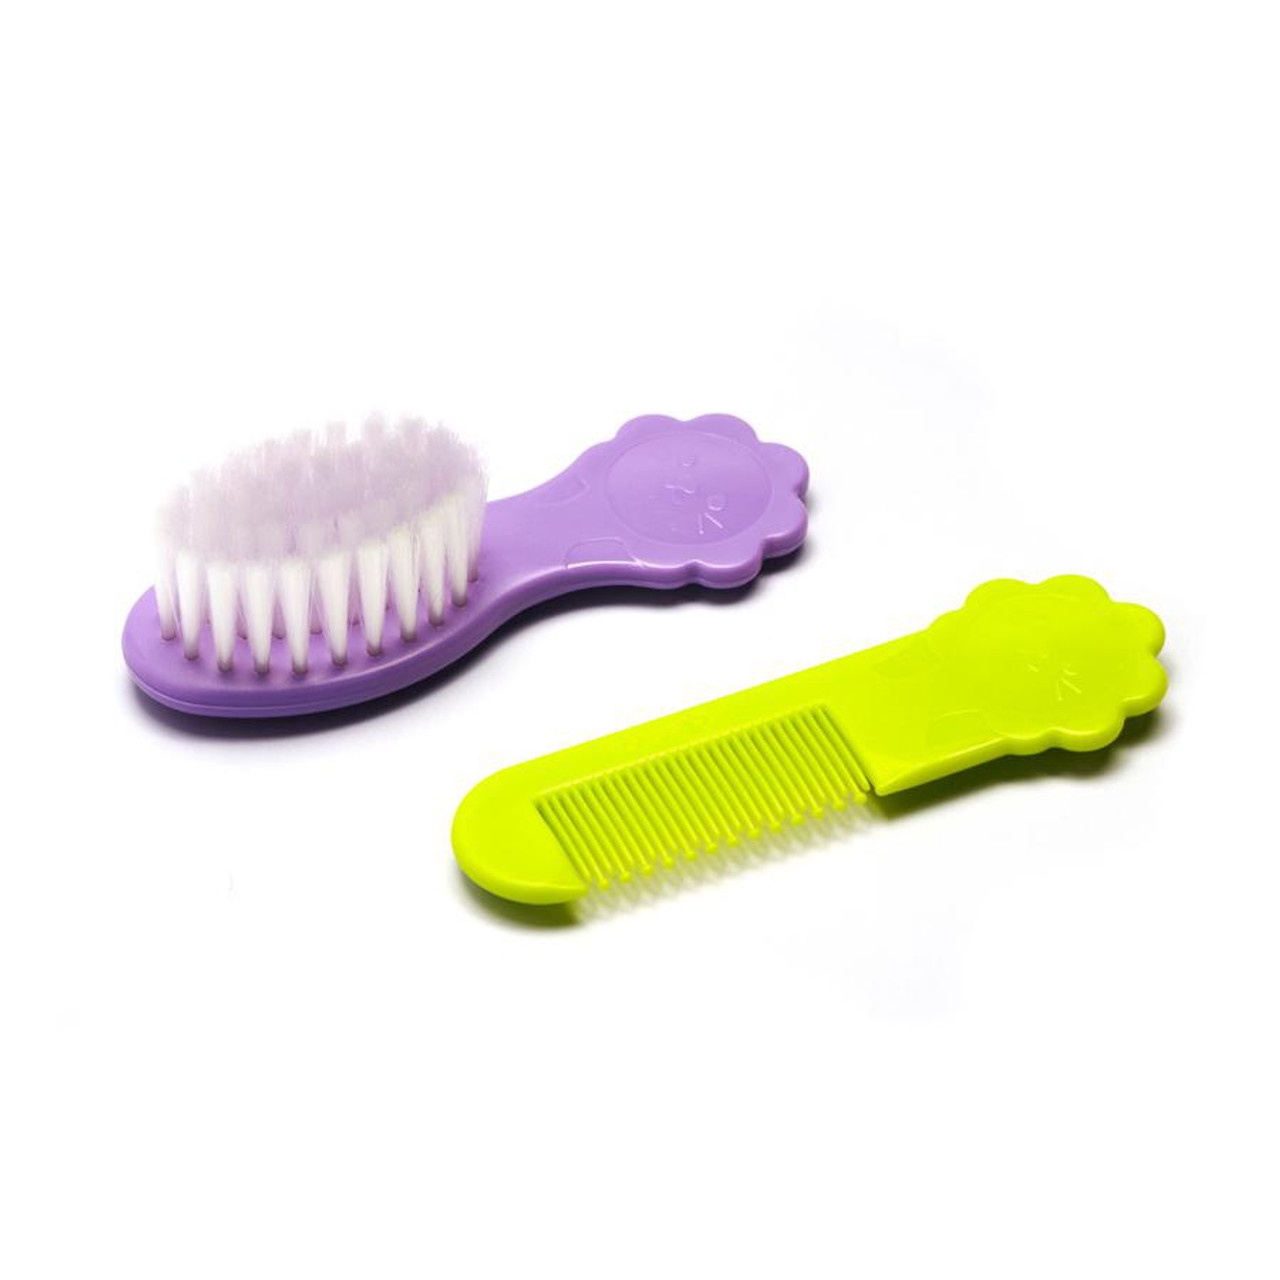 Pigeon Comb & Brush Set at Baby Barn Discounts Pigeon comb & brush is specially designed to be gentle on your baby.